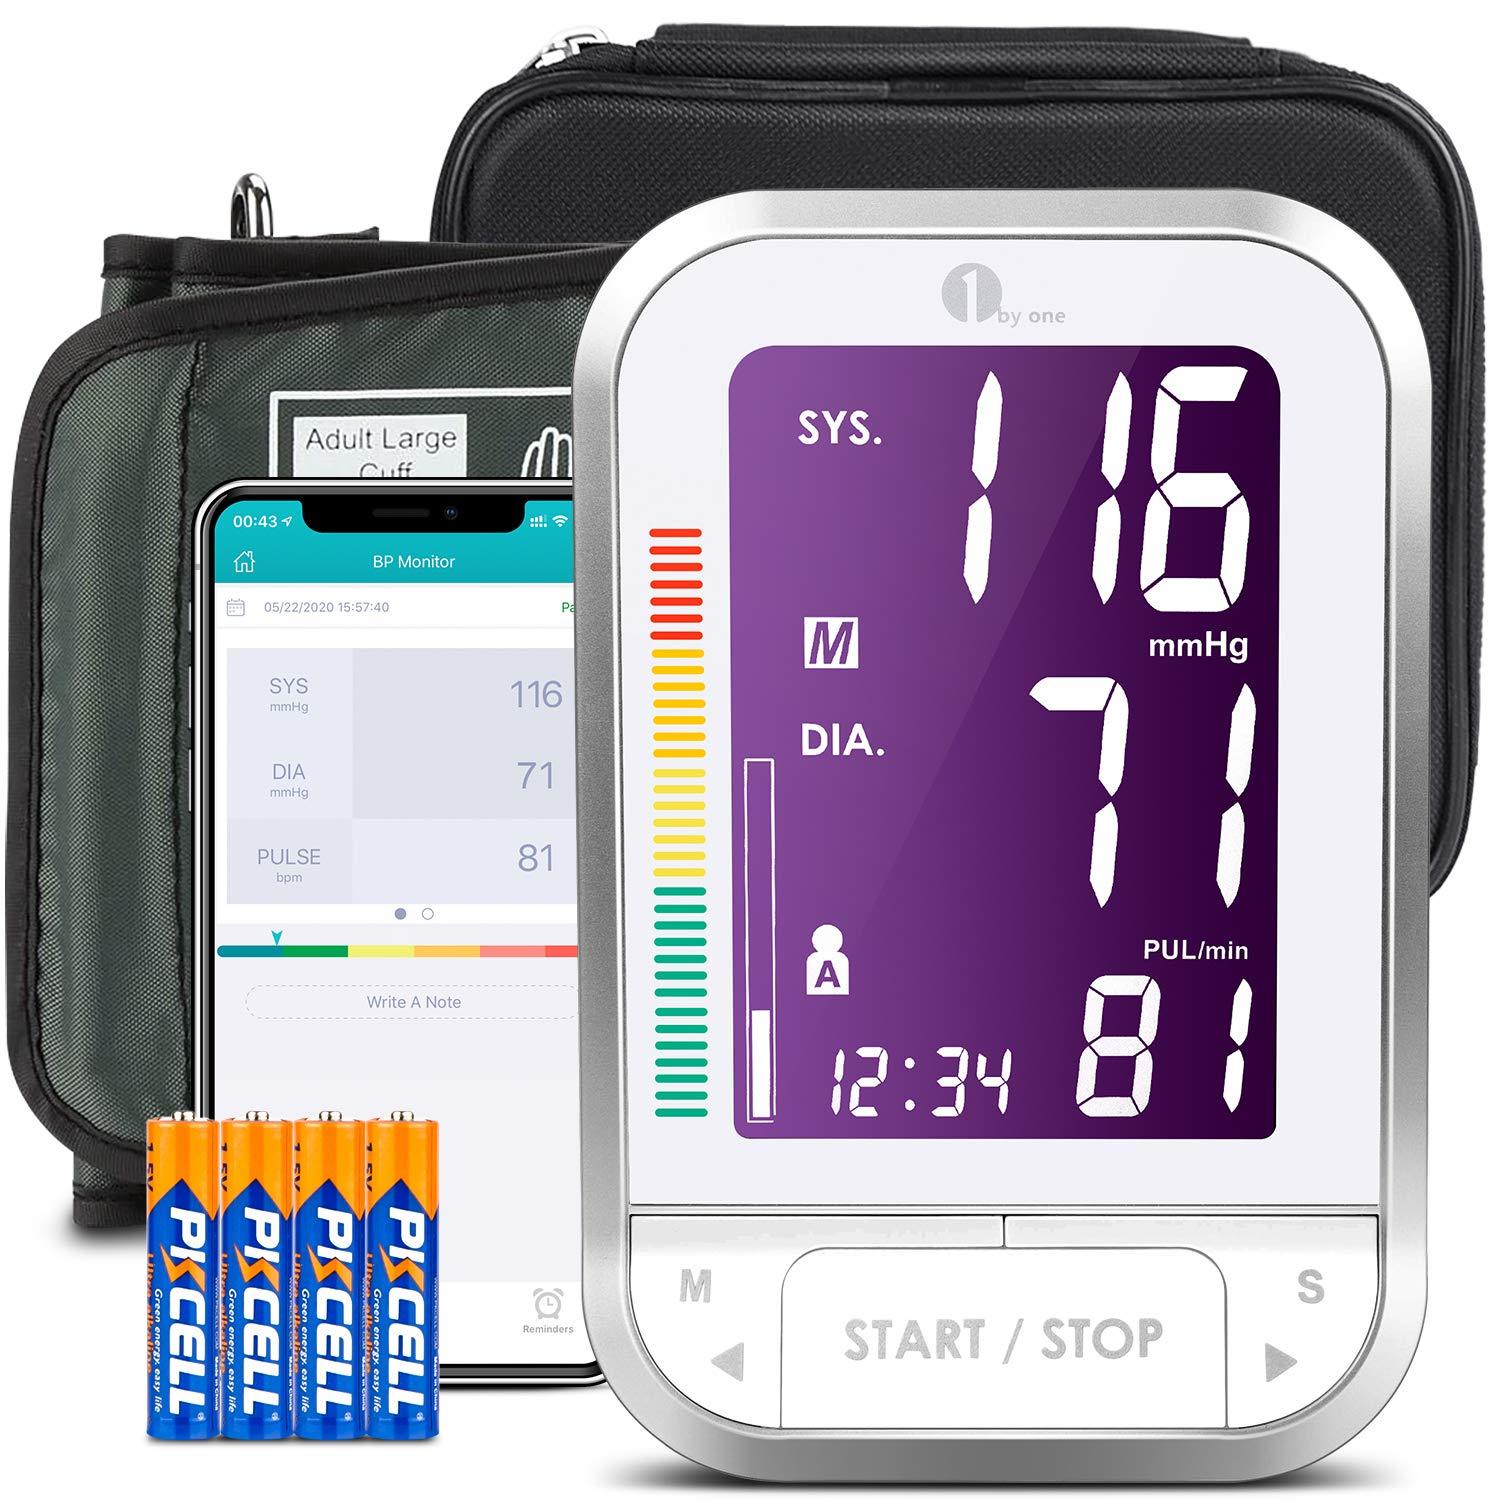 1byone Bluetooth Blood Pressure Monitor with Cuff for Home Use, Automatic Digital BP Monitor Upper Arm Pressure Machine, 120 Groups Memory, 4.7 inch Display, Cloud Storage, Batteries Included